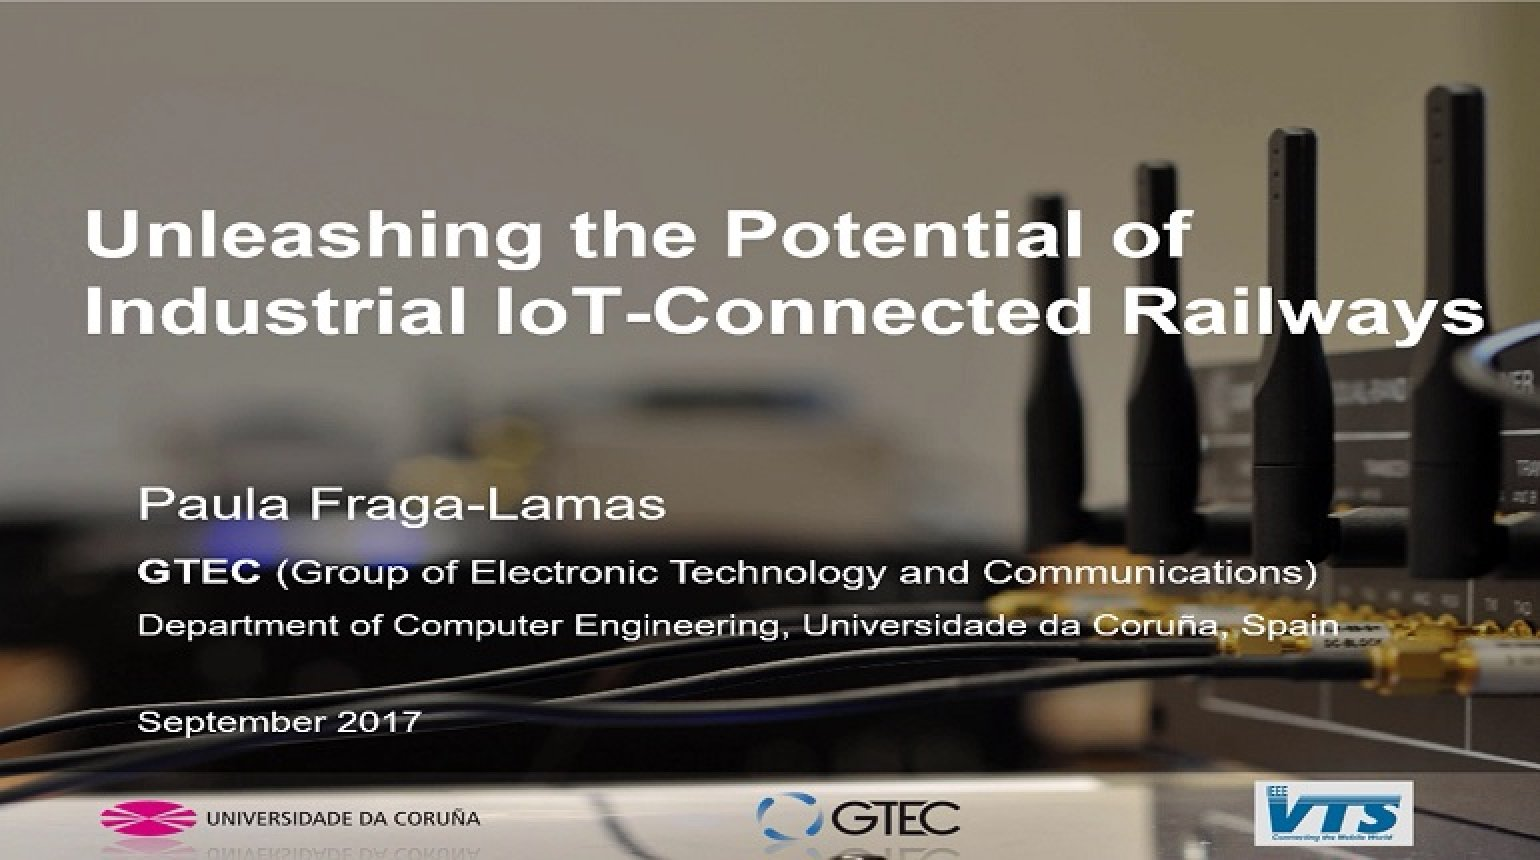 Video - Unleashing the Potential of Industrial IoT-Connected Railways